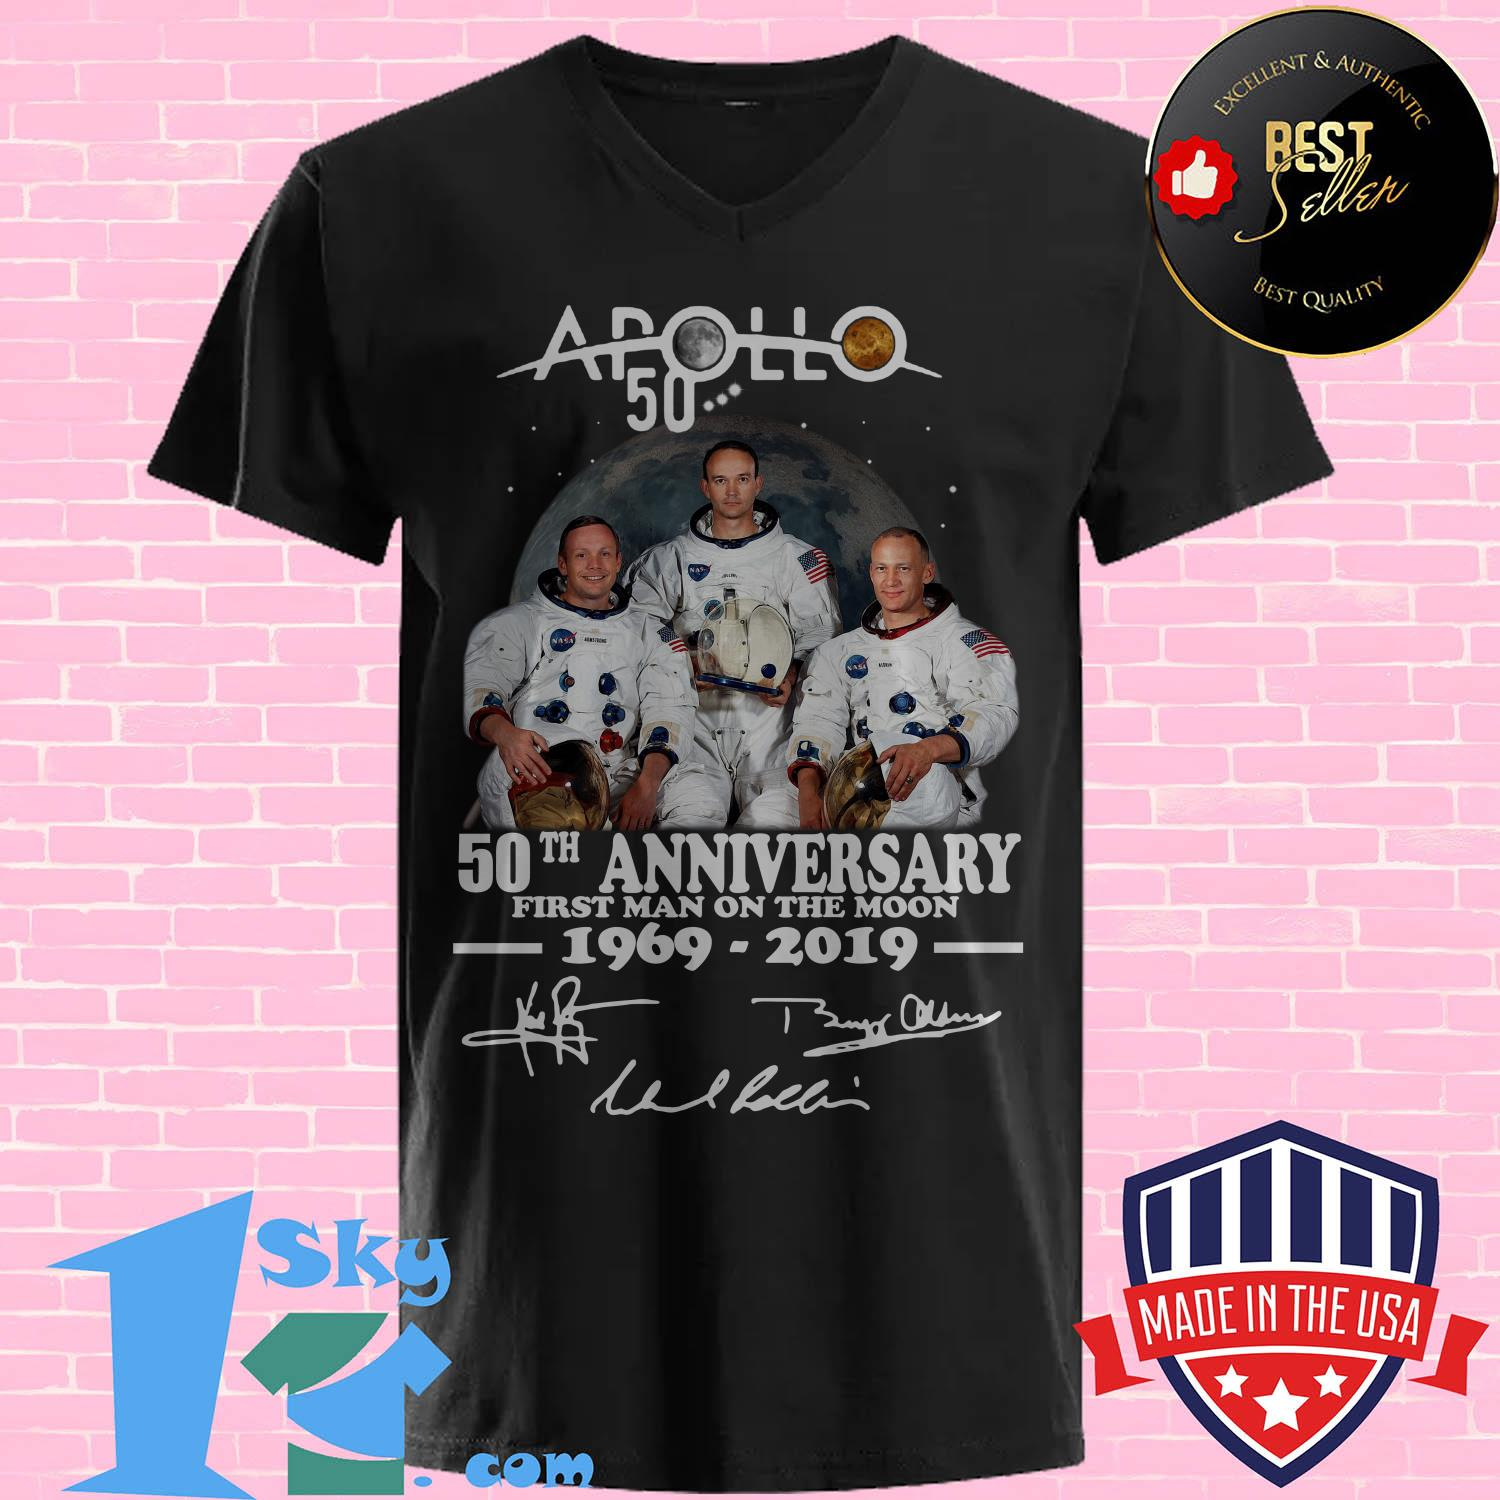 apollo 50th anniversary first man on the moon 1969 2019 rabbit skins toddler fleece signature v neck - Apollo 50th anniversary first Man on the moon 1969-2019 rabbit skins toddler fleece signature shirt